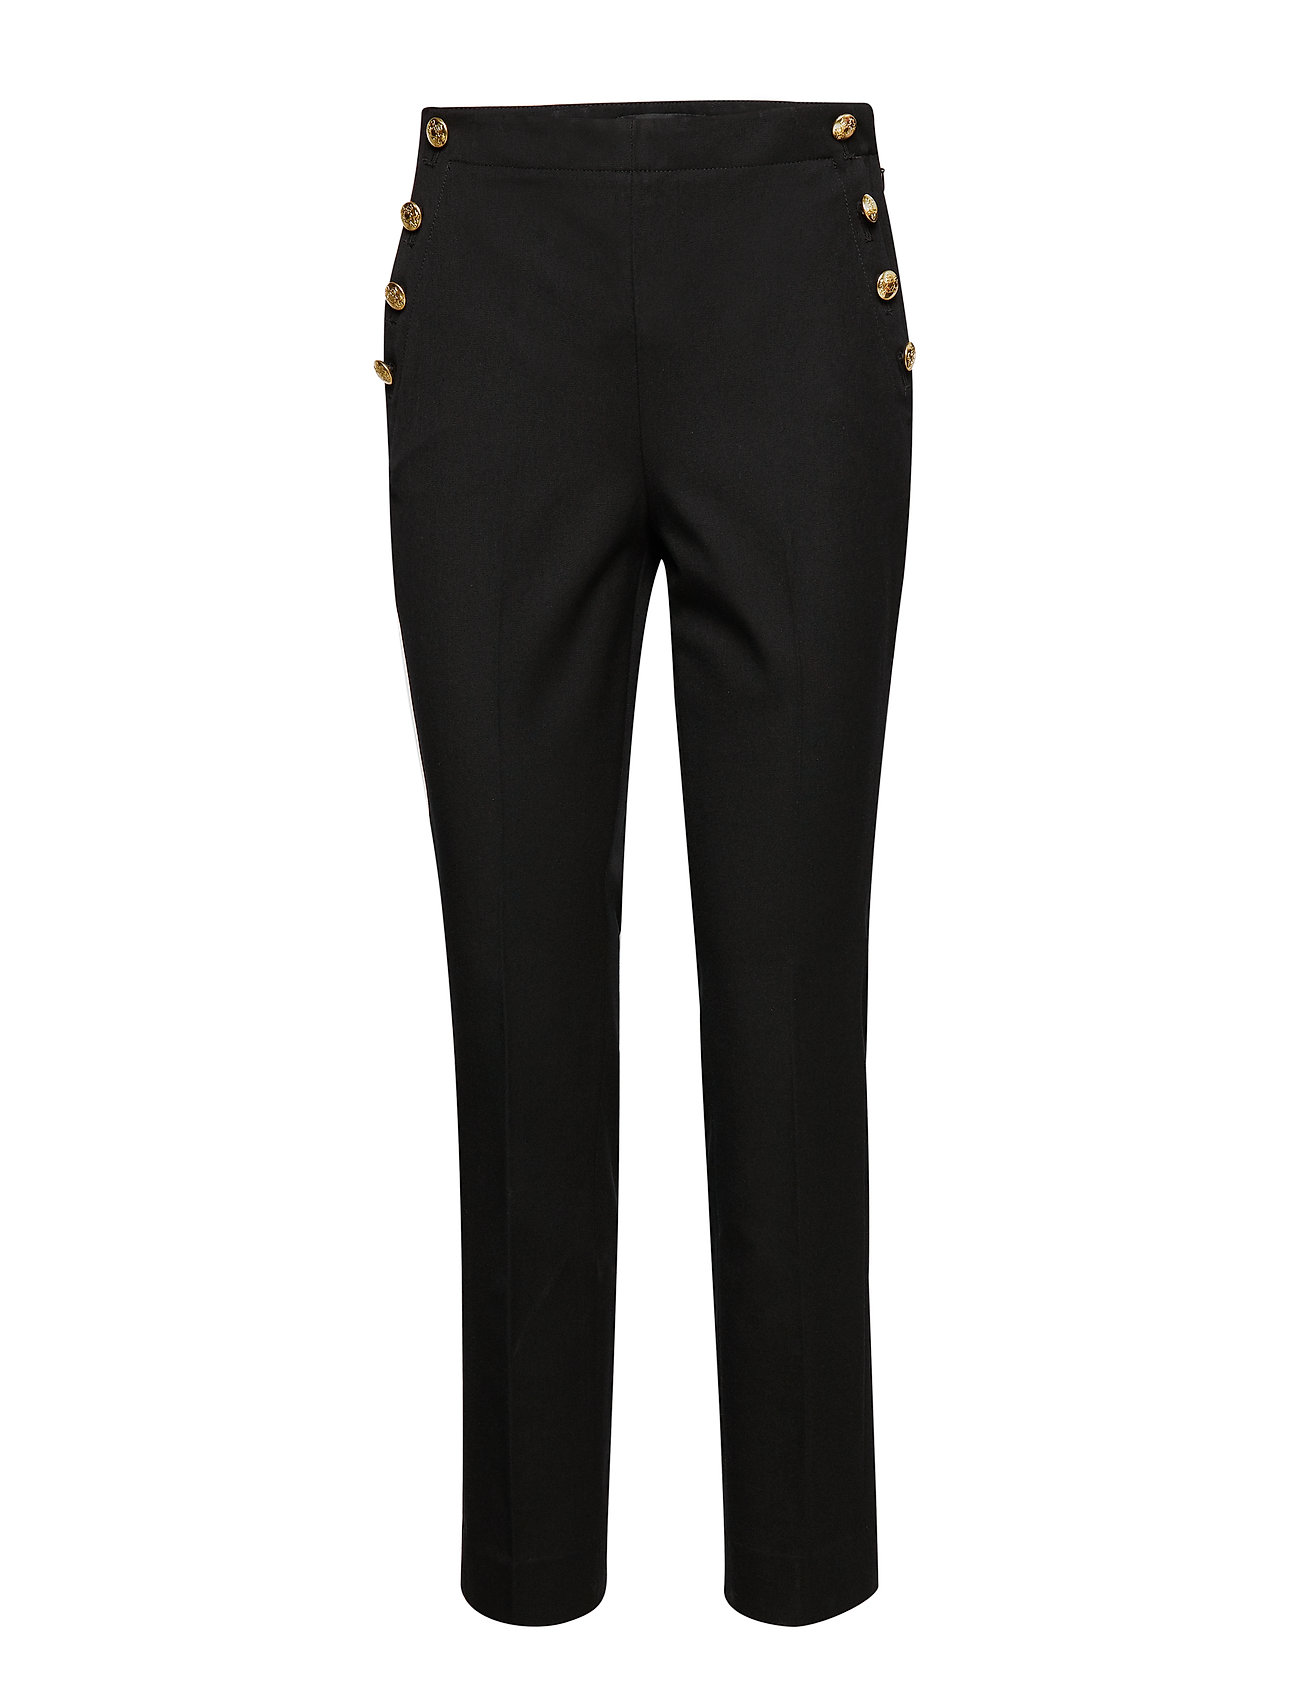 Banana Republic HIGH RISE svart SAILOR SLOAN PANT Byxor